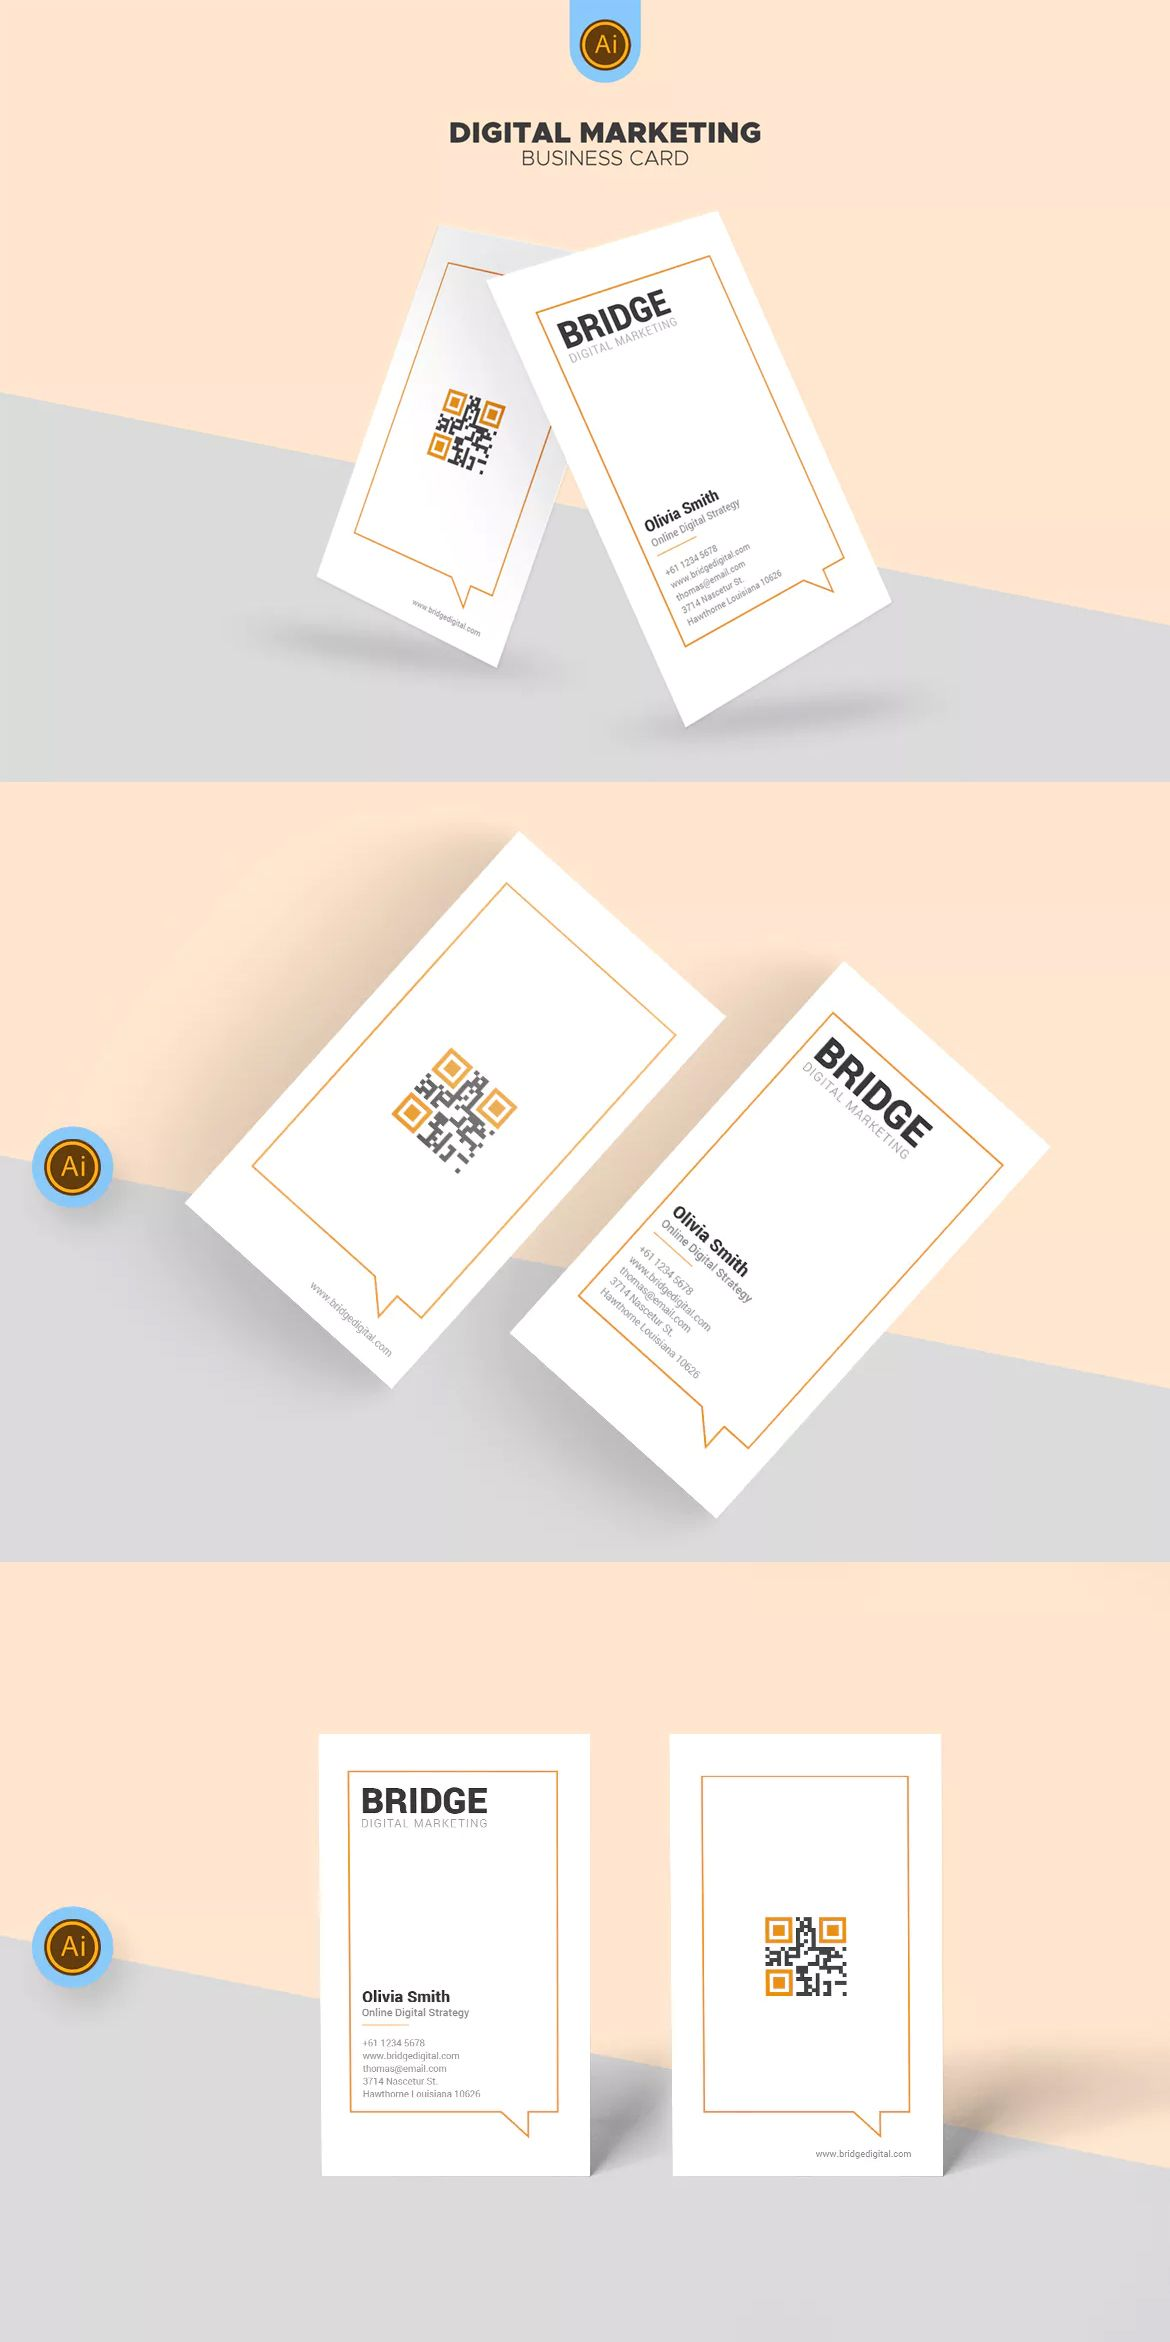 Bridge digital marketing business card template ai business card bridge digital marketing business card template ai cheaphphosting Image collections